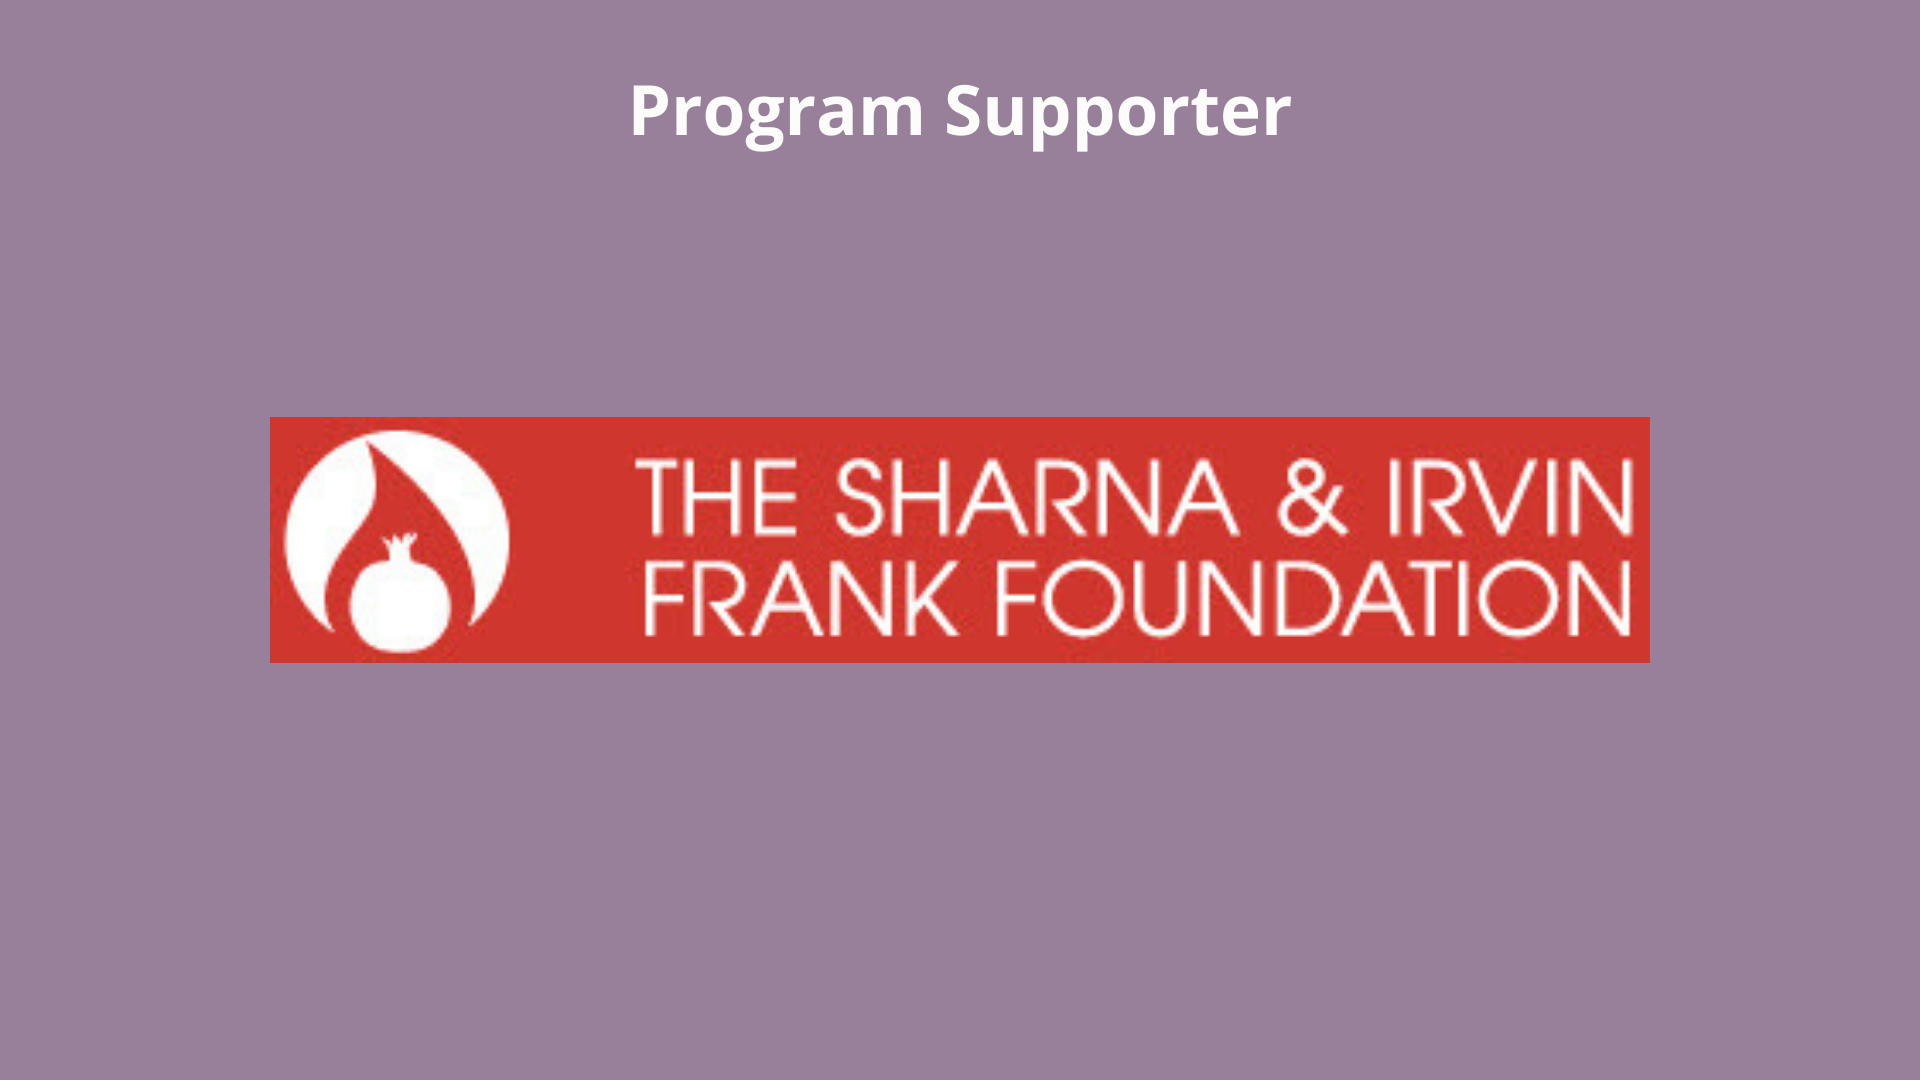 Sharna & Irvin Frank Foundation